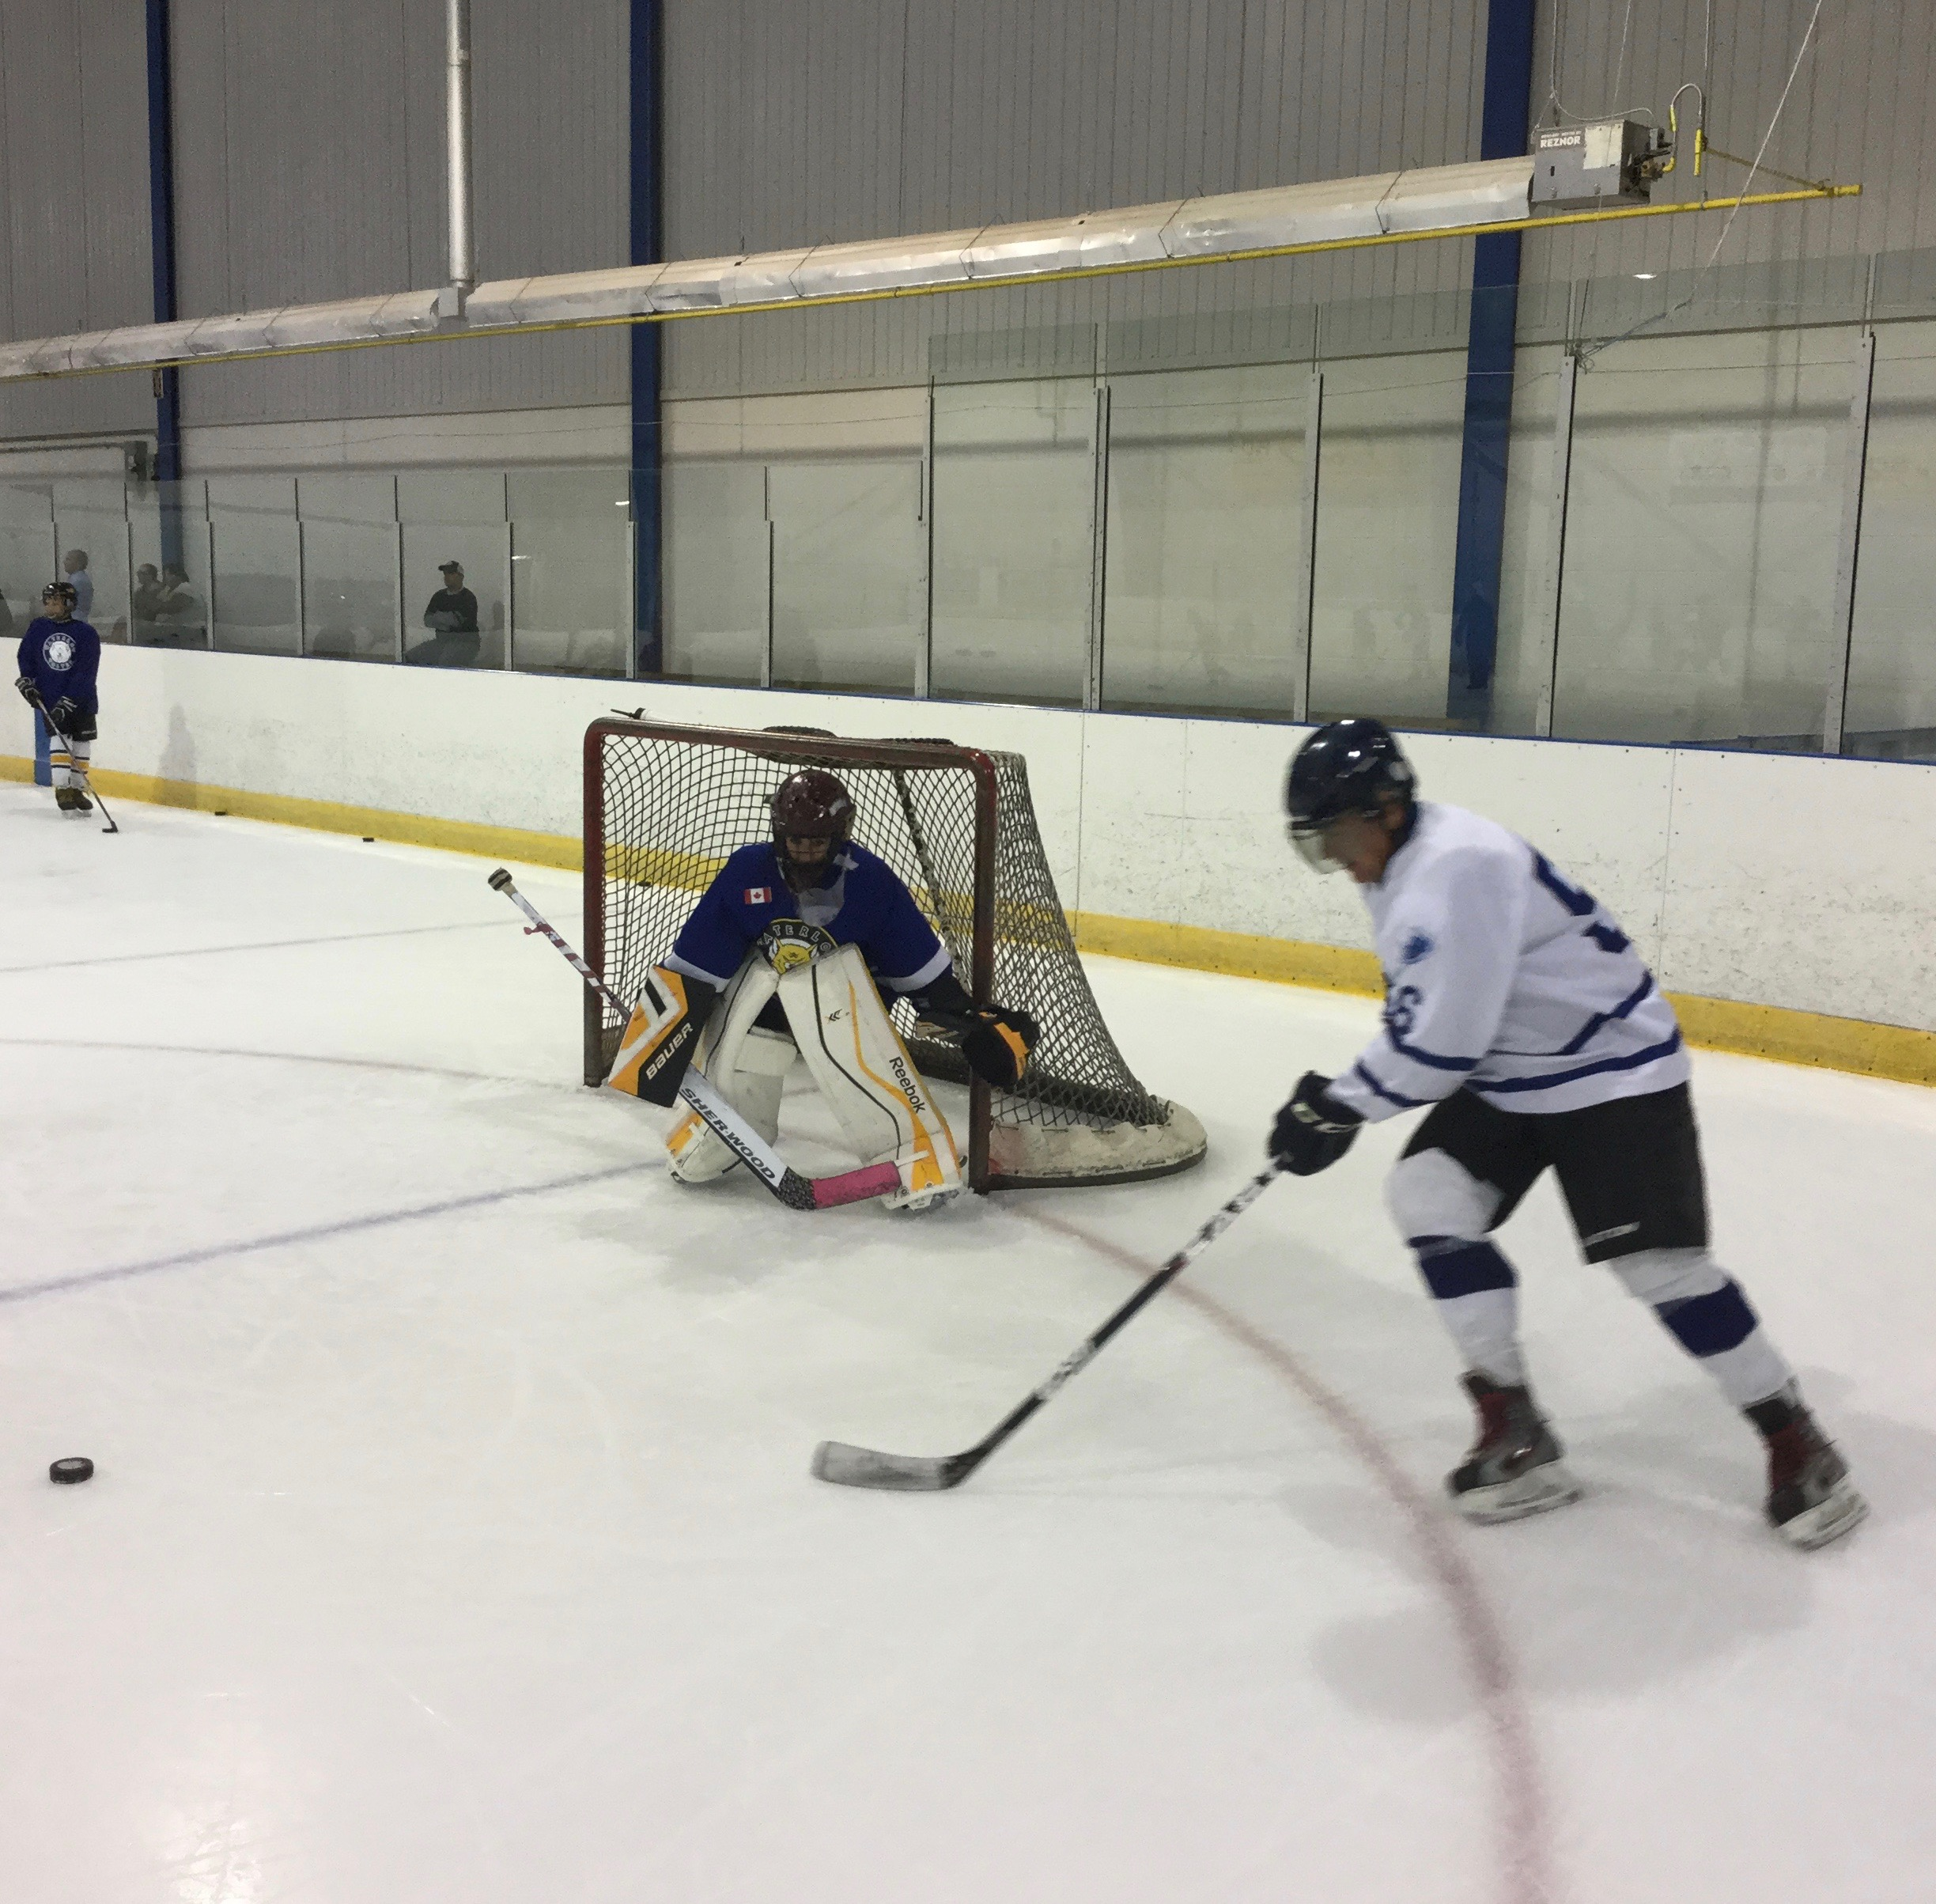 Goalies Winter Goalscoring Goaltending Welcome To Skills Plus Hockey